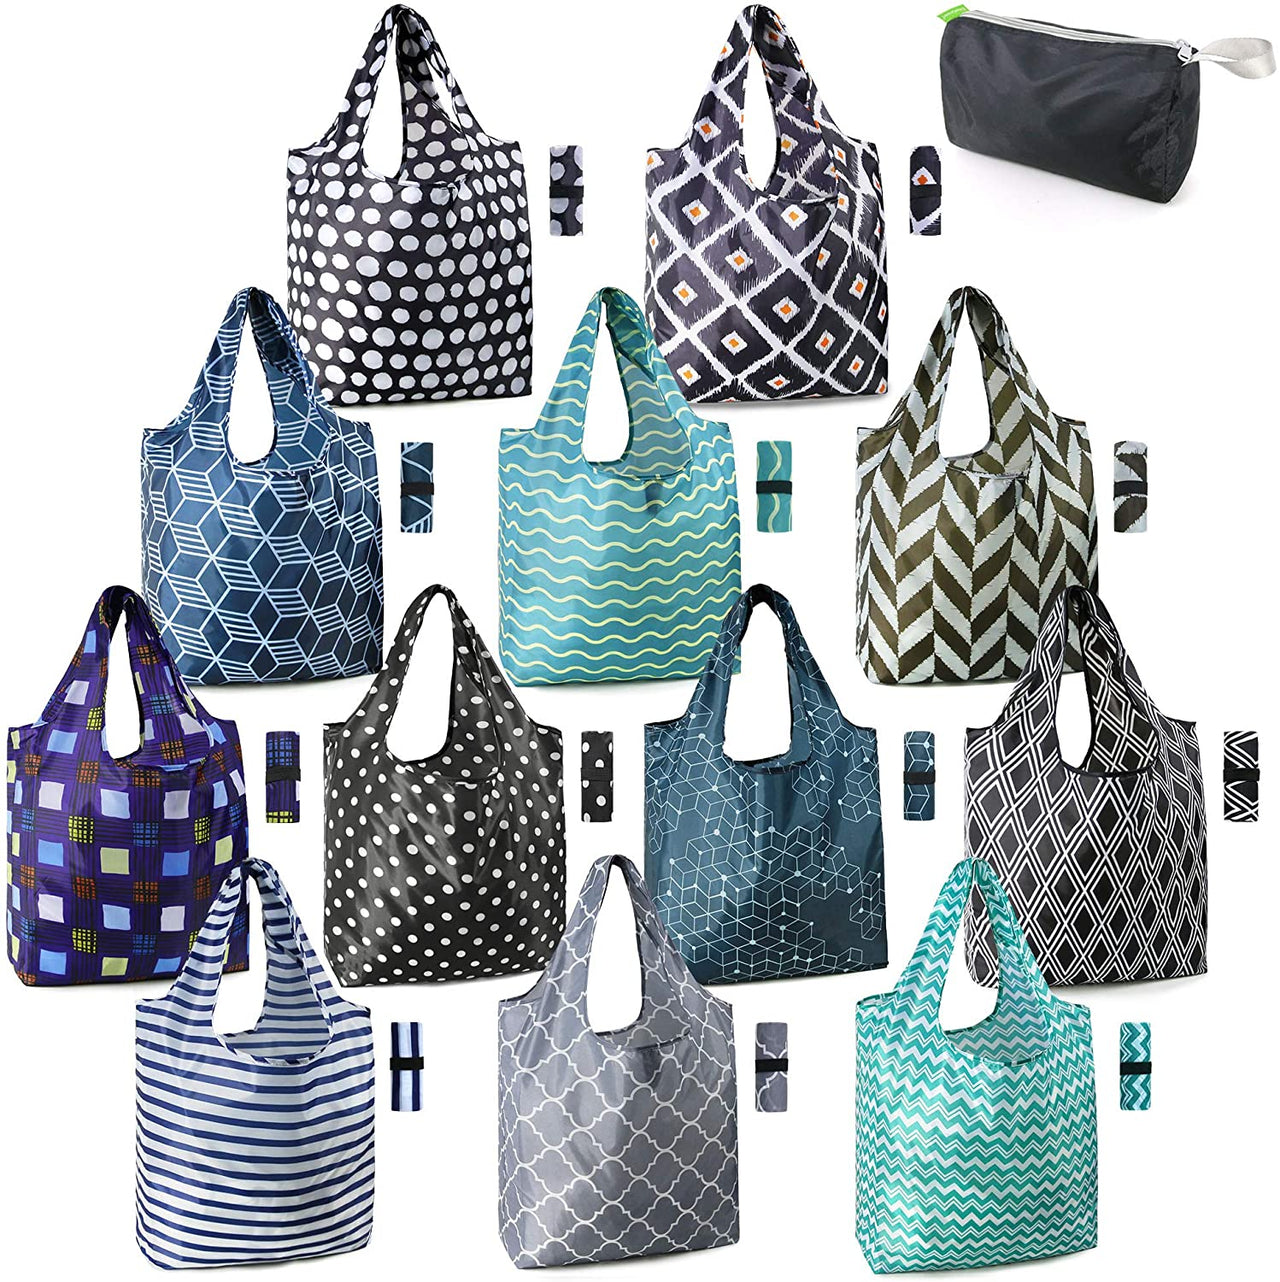 BeeGreen 12 pack Reusable Shopping Bags/geometry